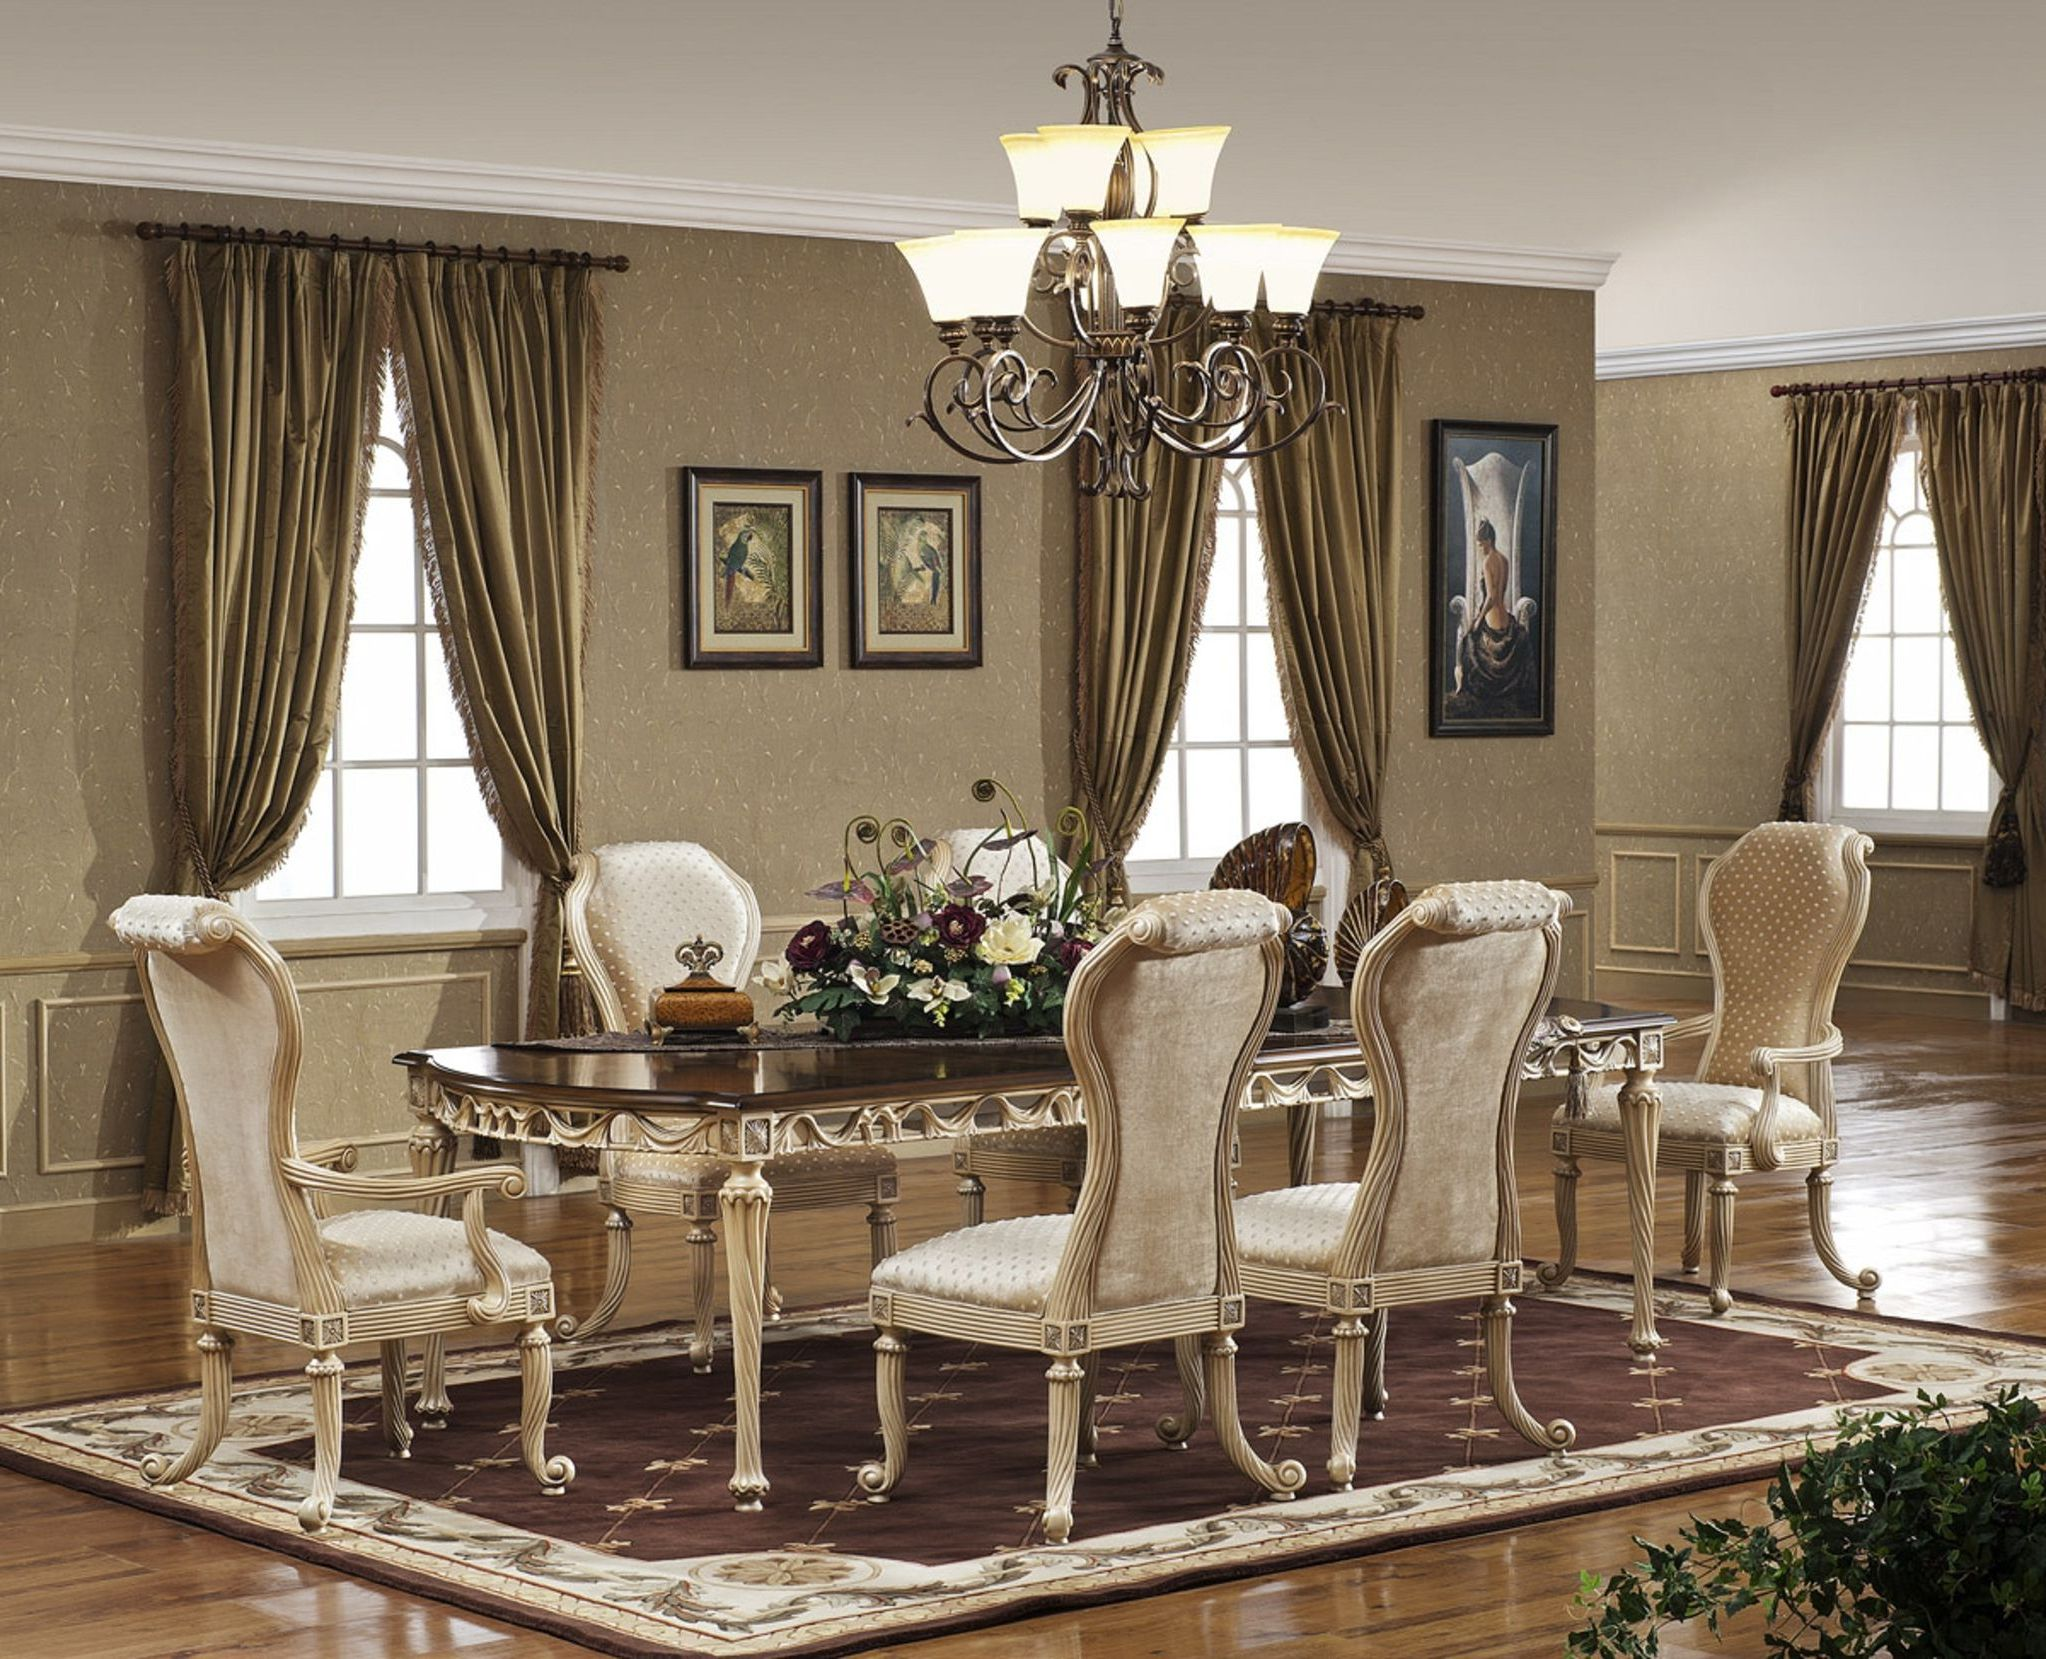 Dining room table and chairs ideas with images for Living room designs with dining table